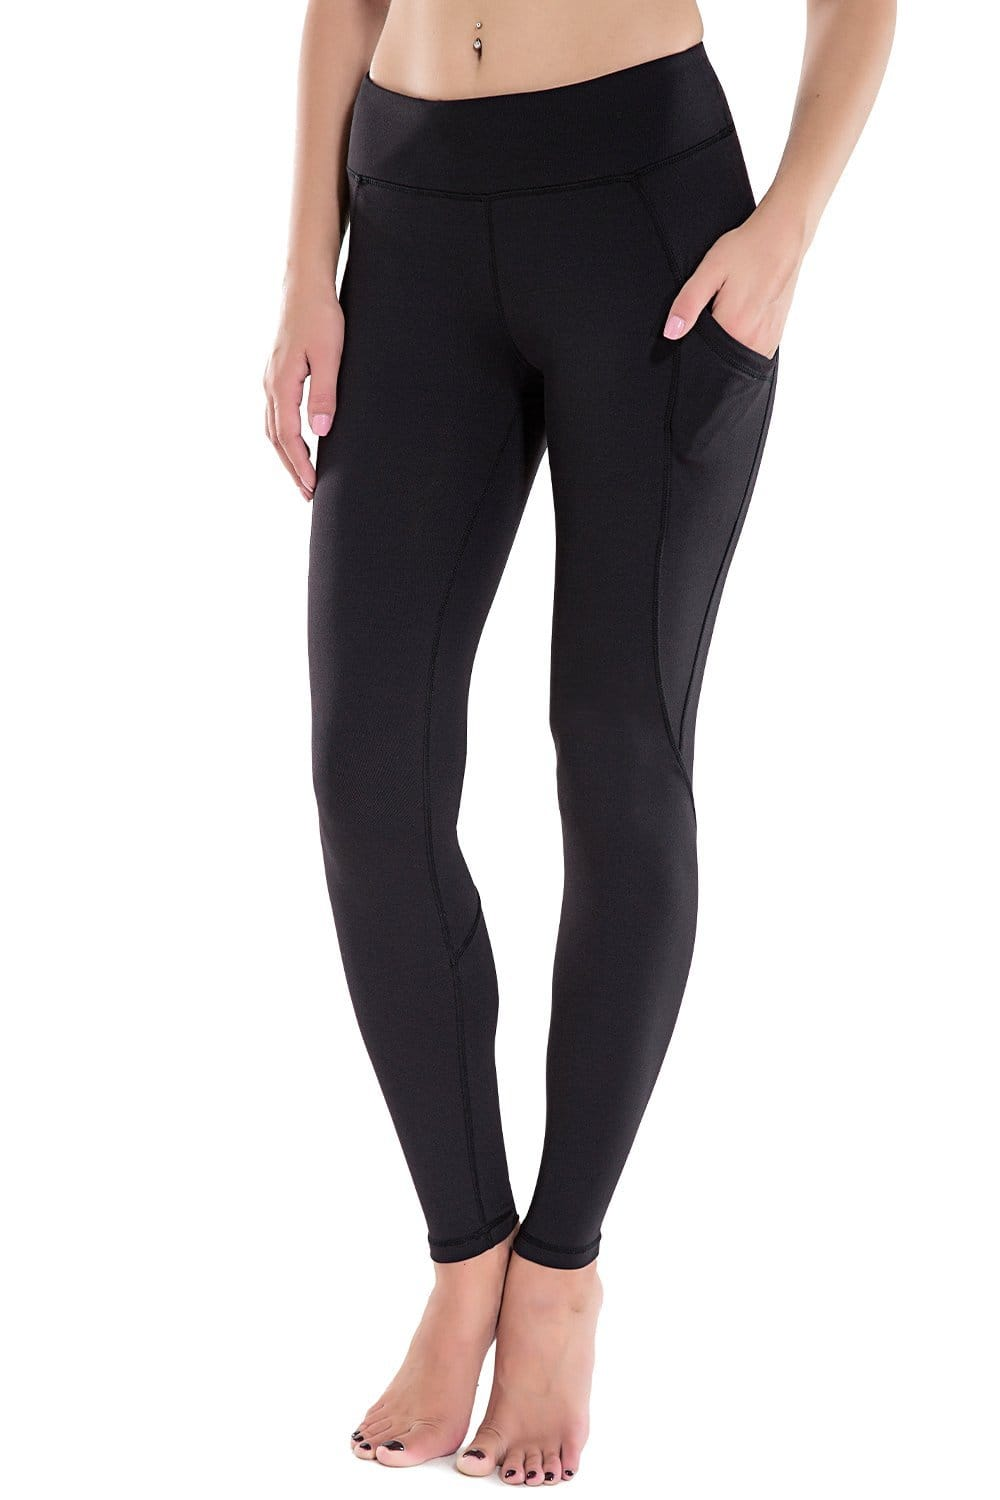 Women's Workout Ankle Leggings with Side Pockets Running Yoga Pants $13.99 AC FS w/Amazon Prime